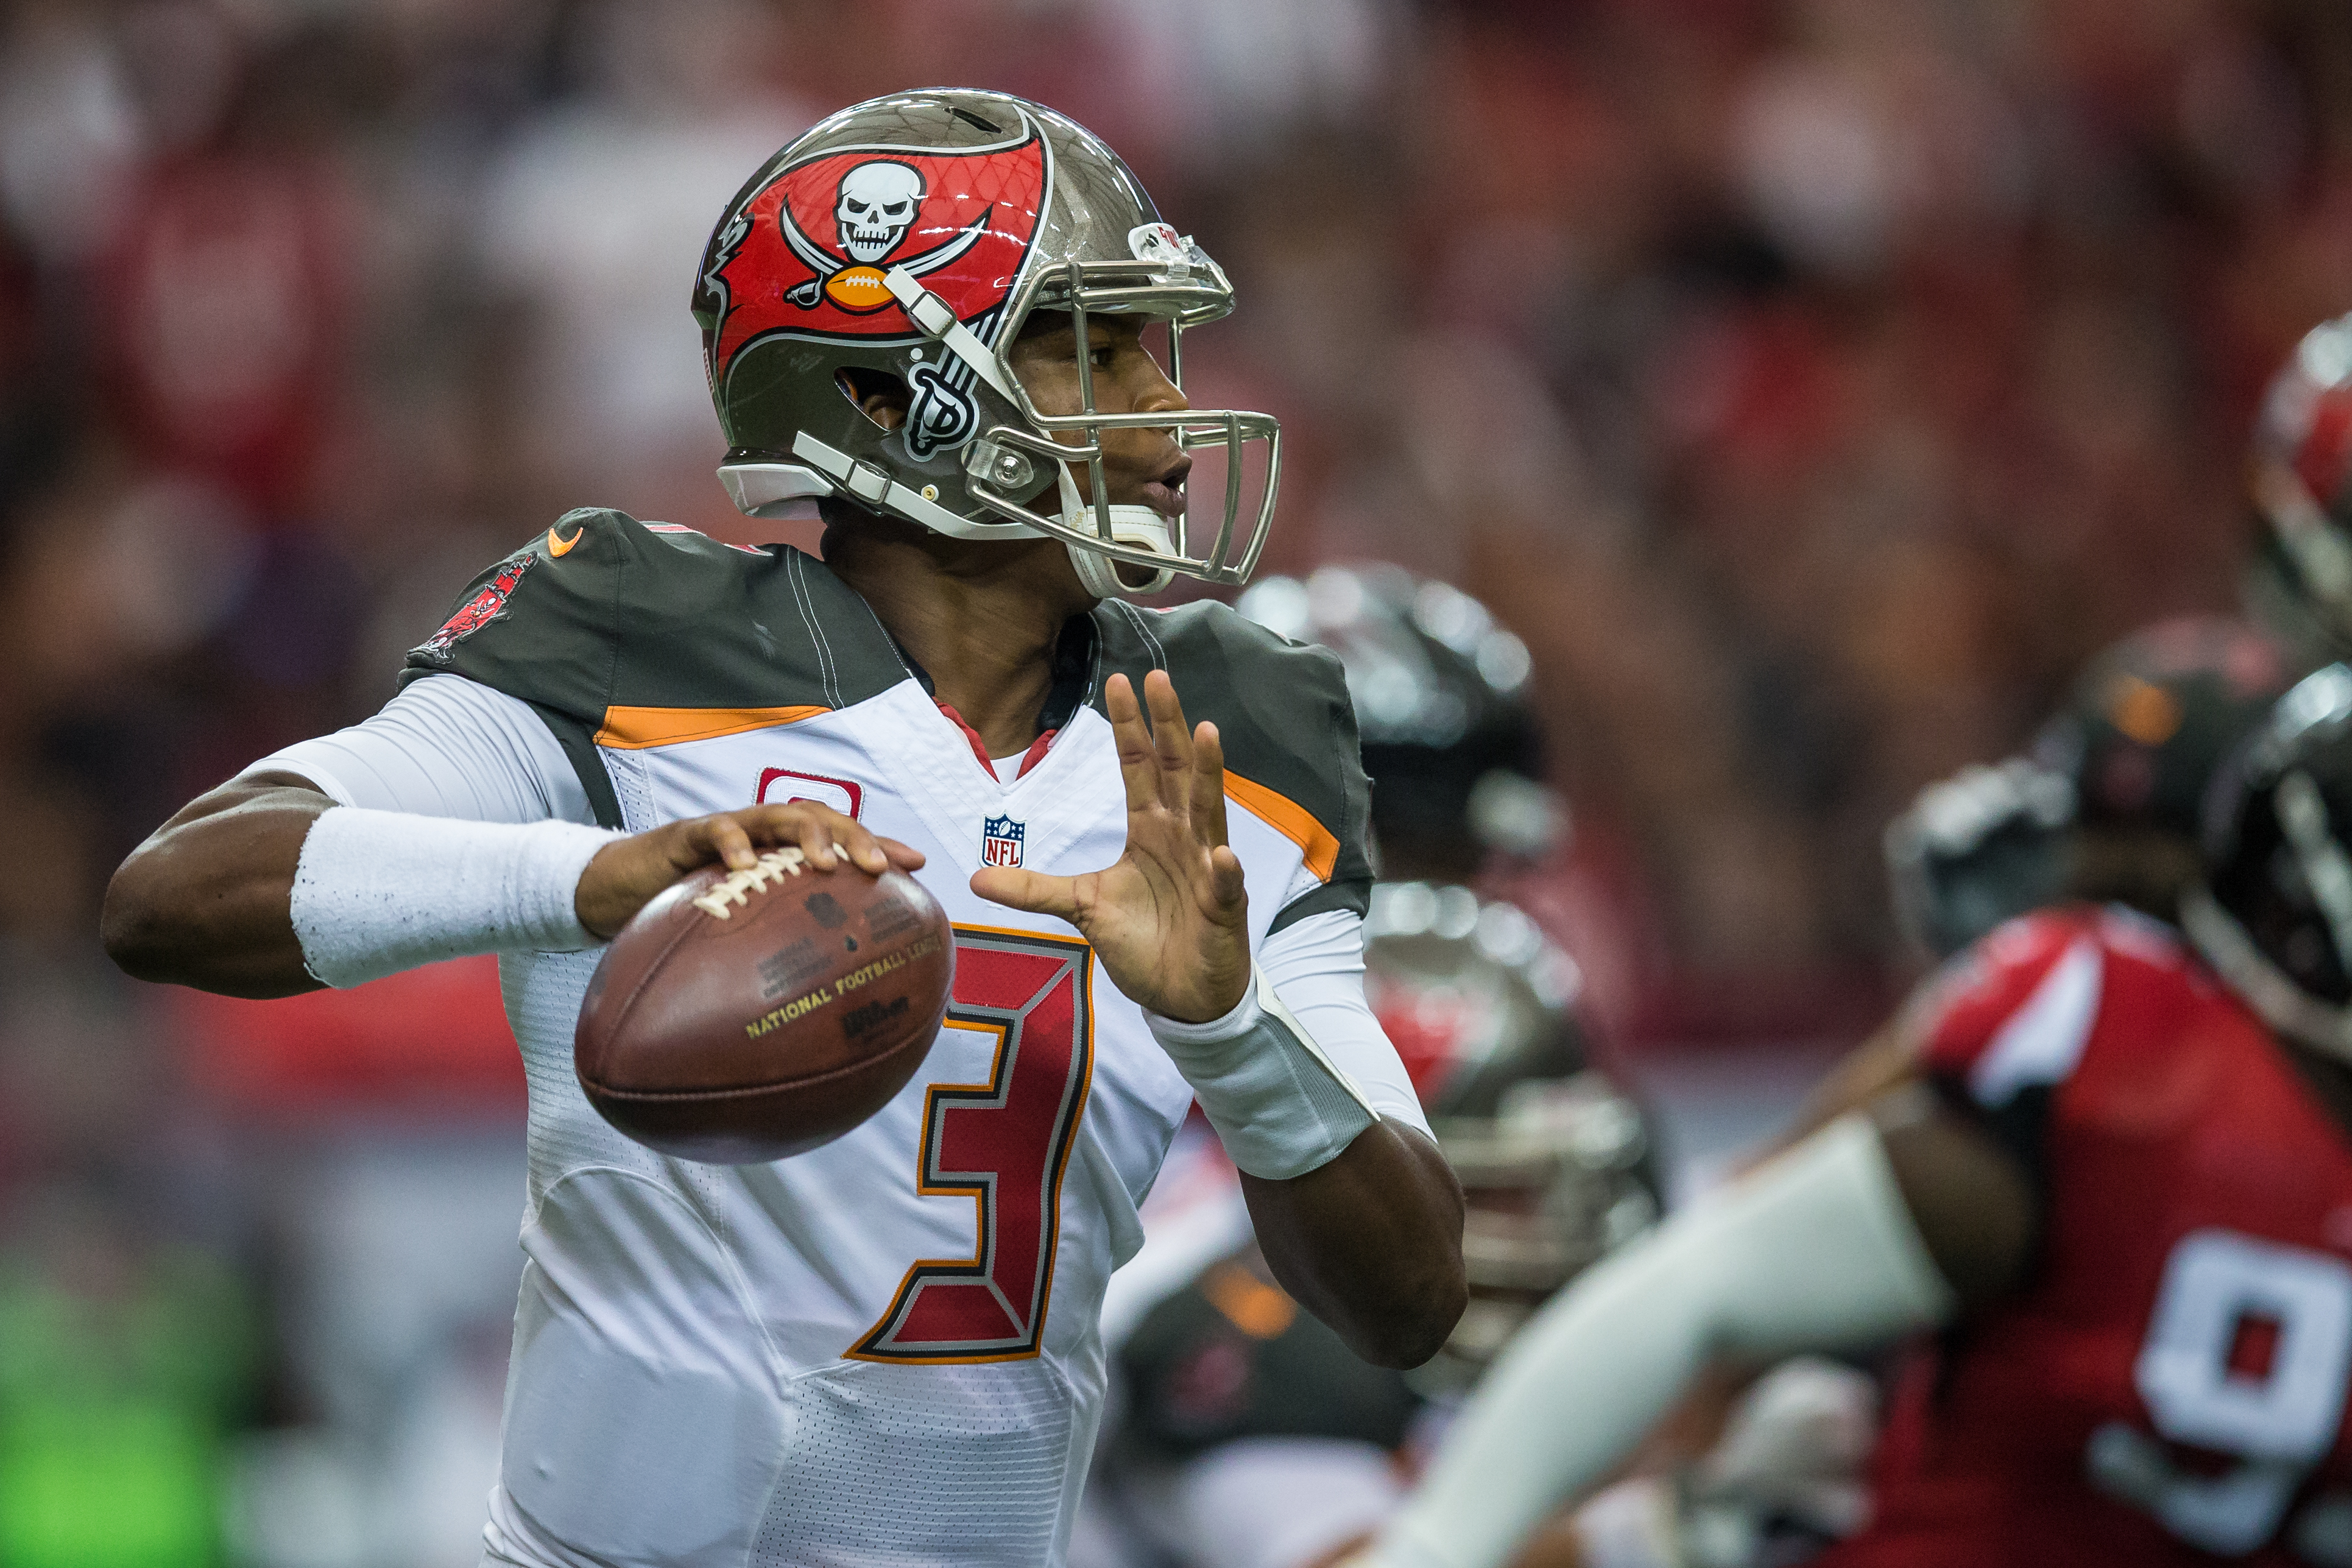 Winston threw for four touchdowns in the middle two quarters to lead Bucs./TRAVIS PENDERGRASS